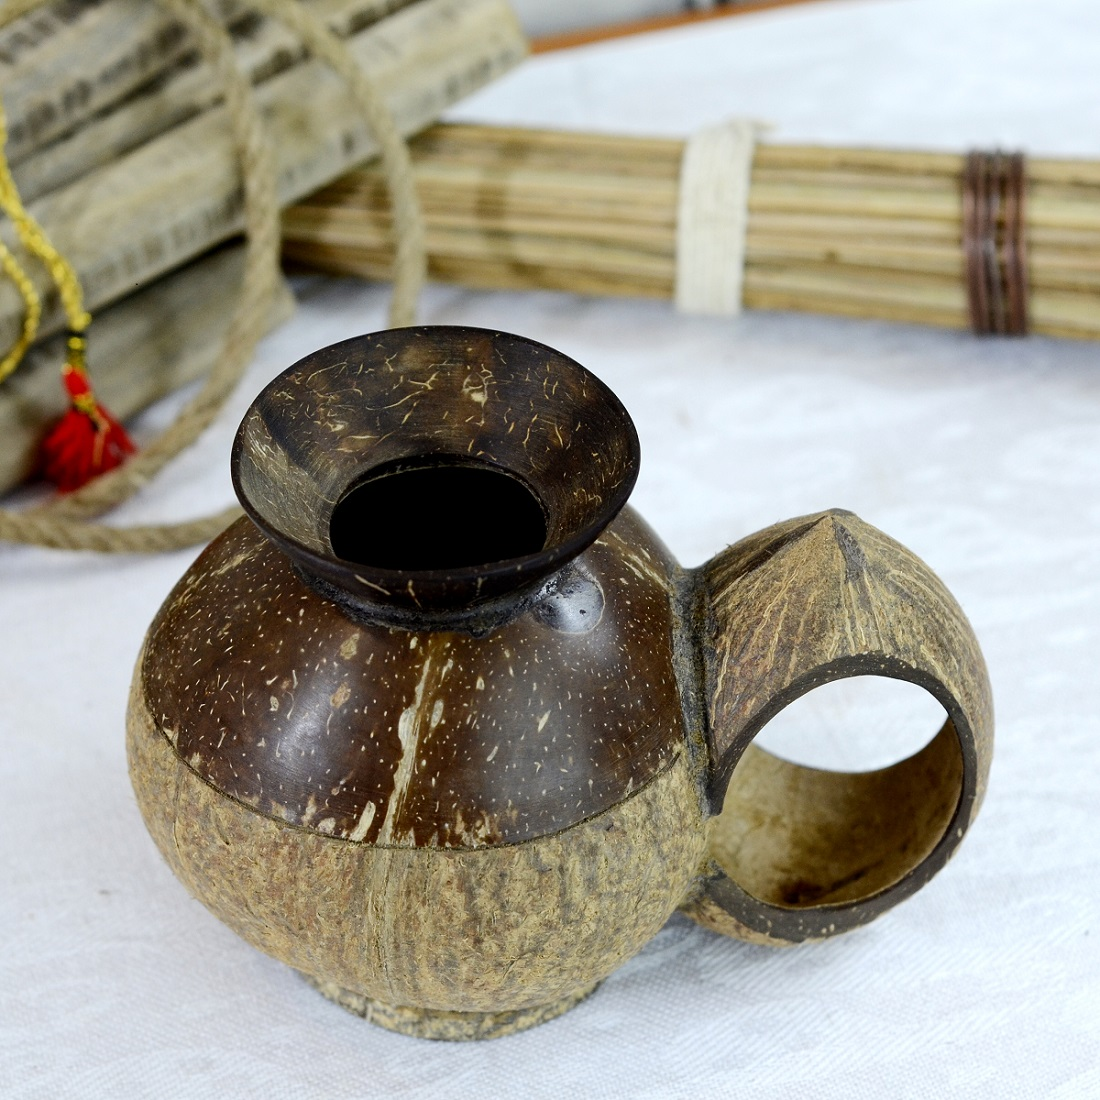 Handmade Coconut Shell Dry Fruits Container With Handle